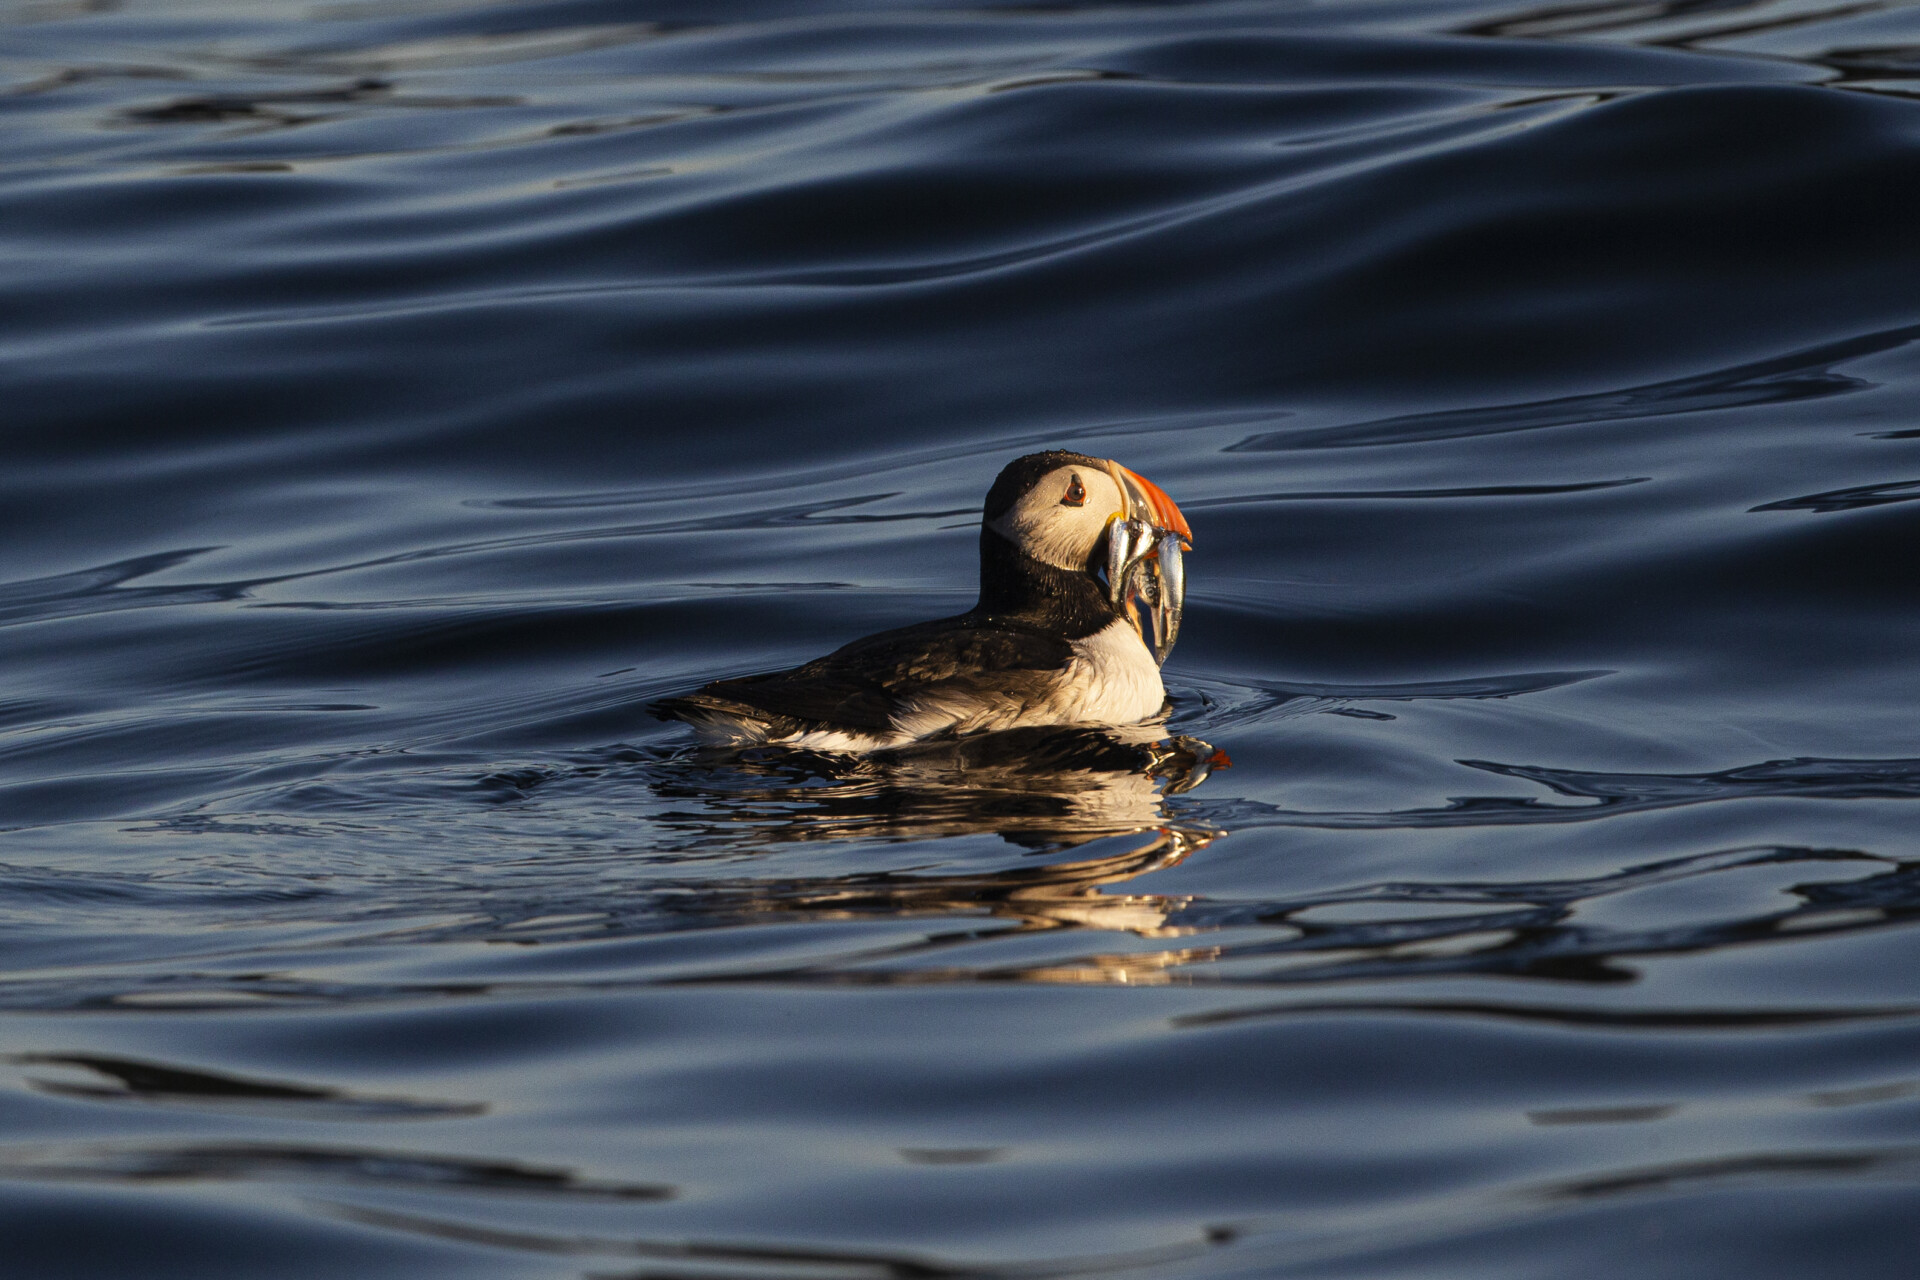 Puffin with a Mouthful of Fish. Giant Gannets, guillemots, puffin pairs, white-tailed eagles, kittiwakes, cormorants and arctic skuas. the Vesterålen Islands and the Andenes waters is not just a birders paradise. The Just ask your wildlife arctic tour guide Piet2Go.